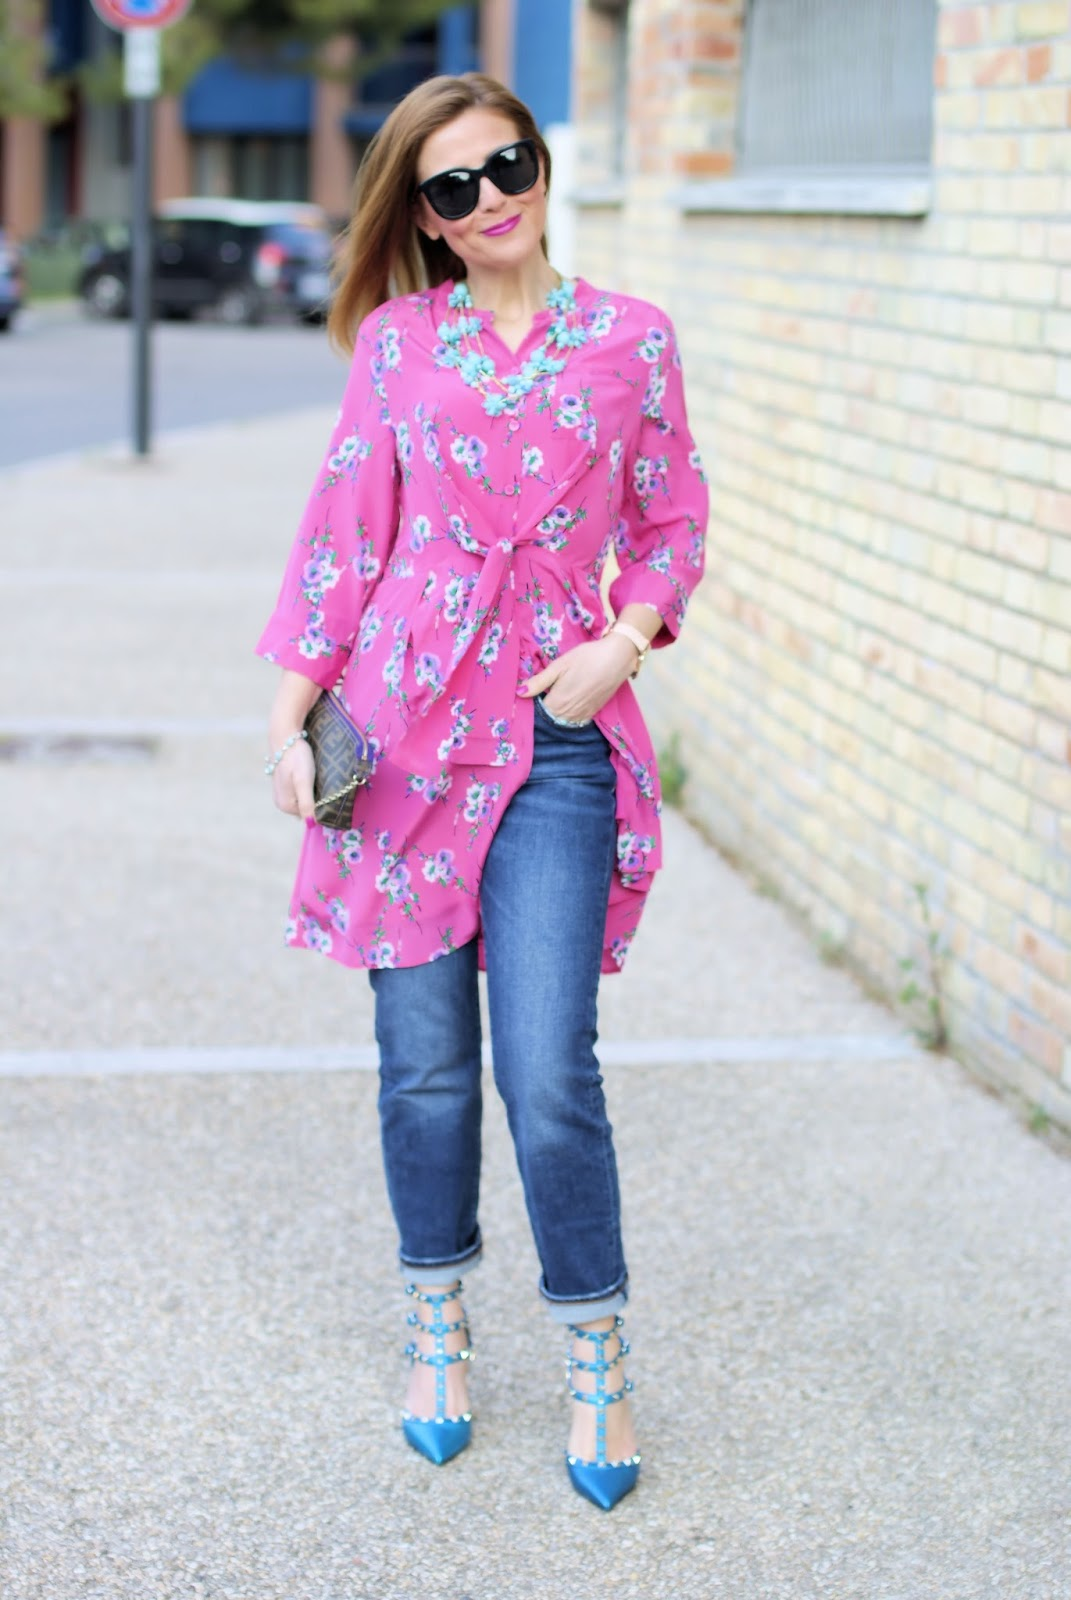 How to wear a dress over jeans: outfit idea with Metisu